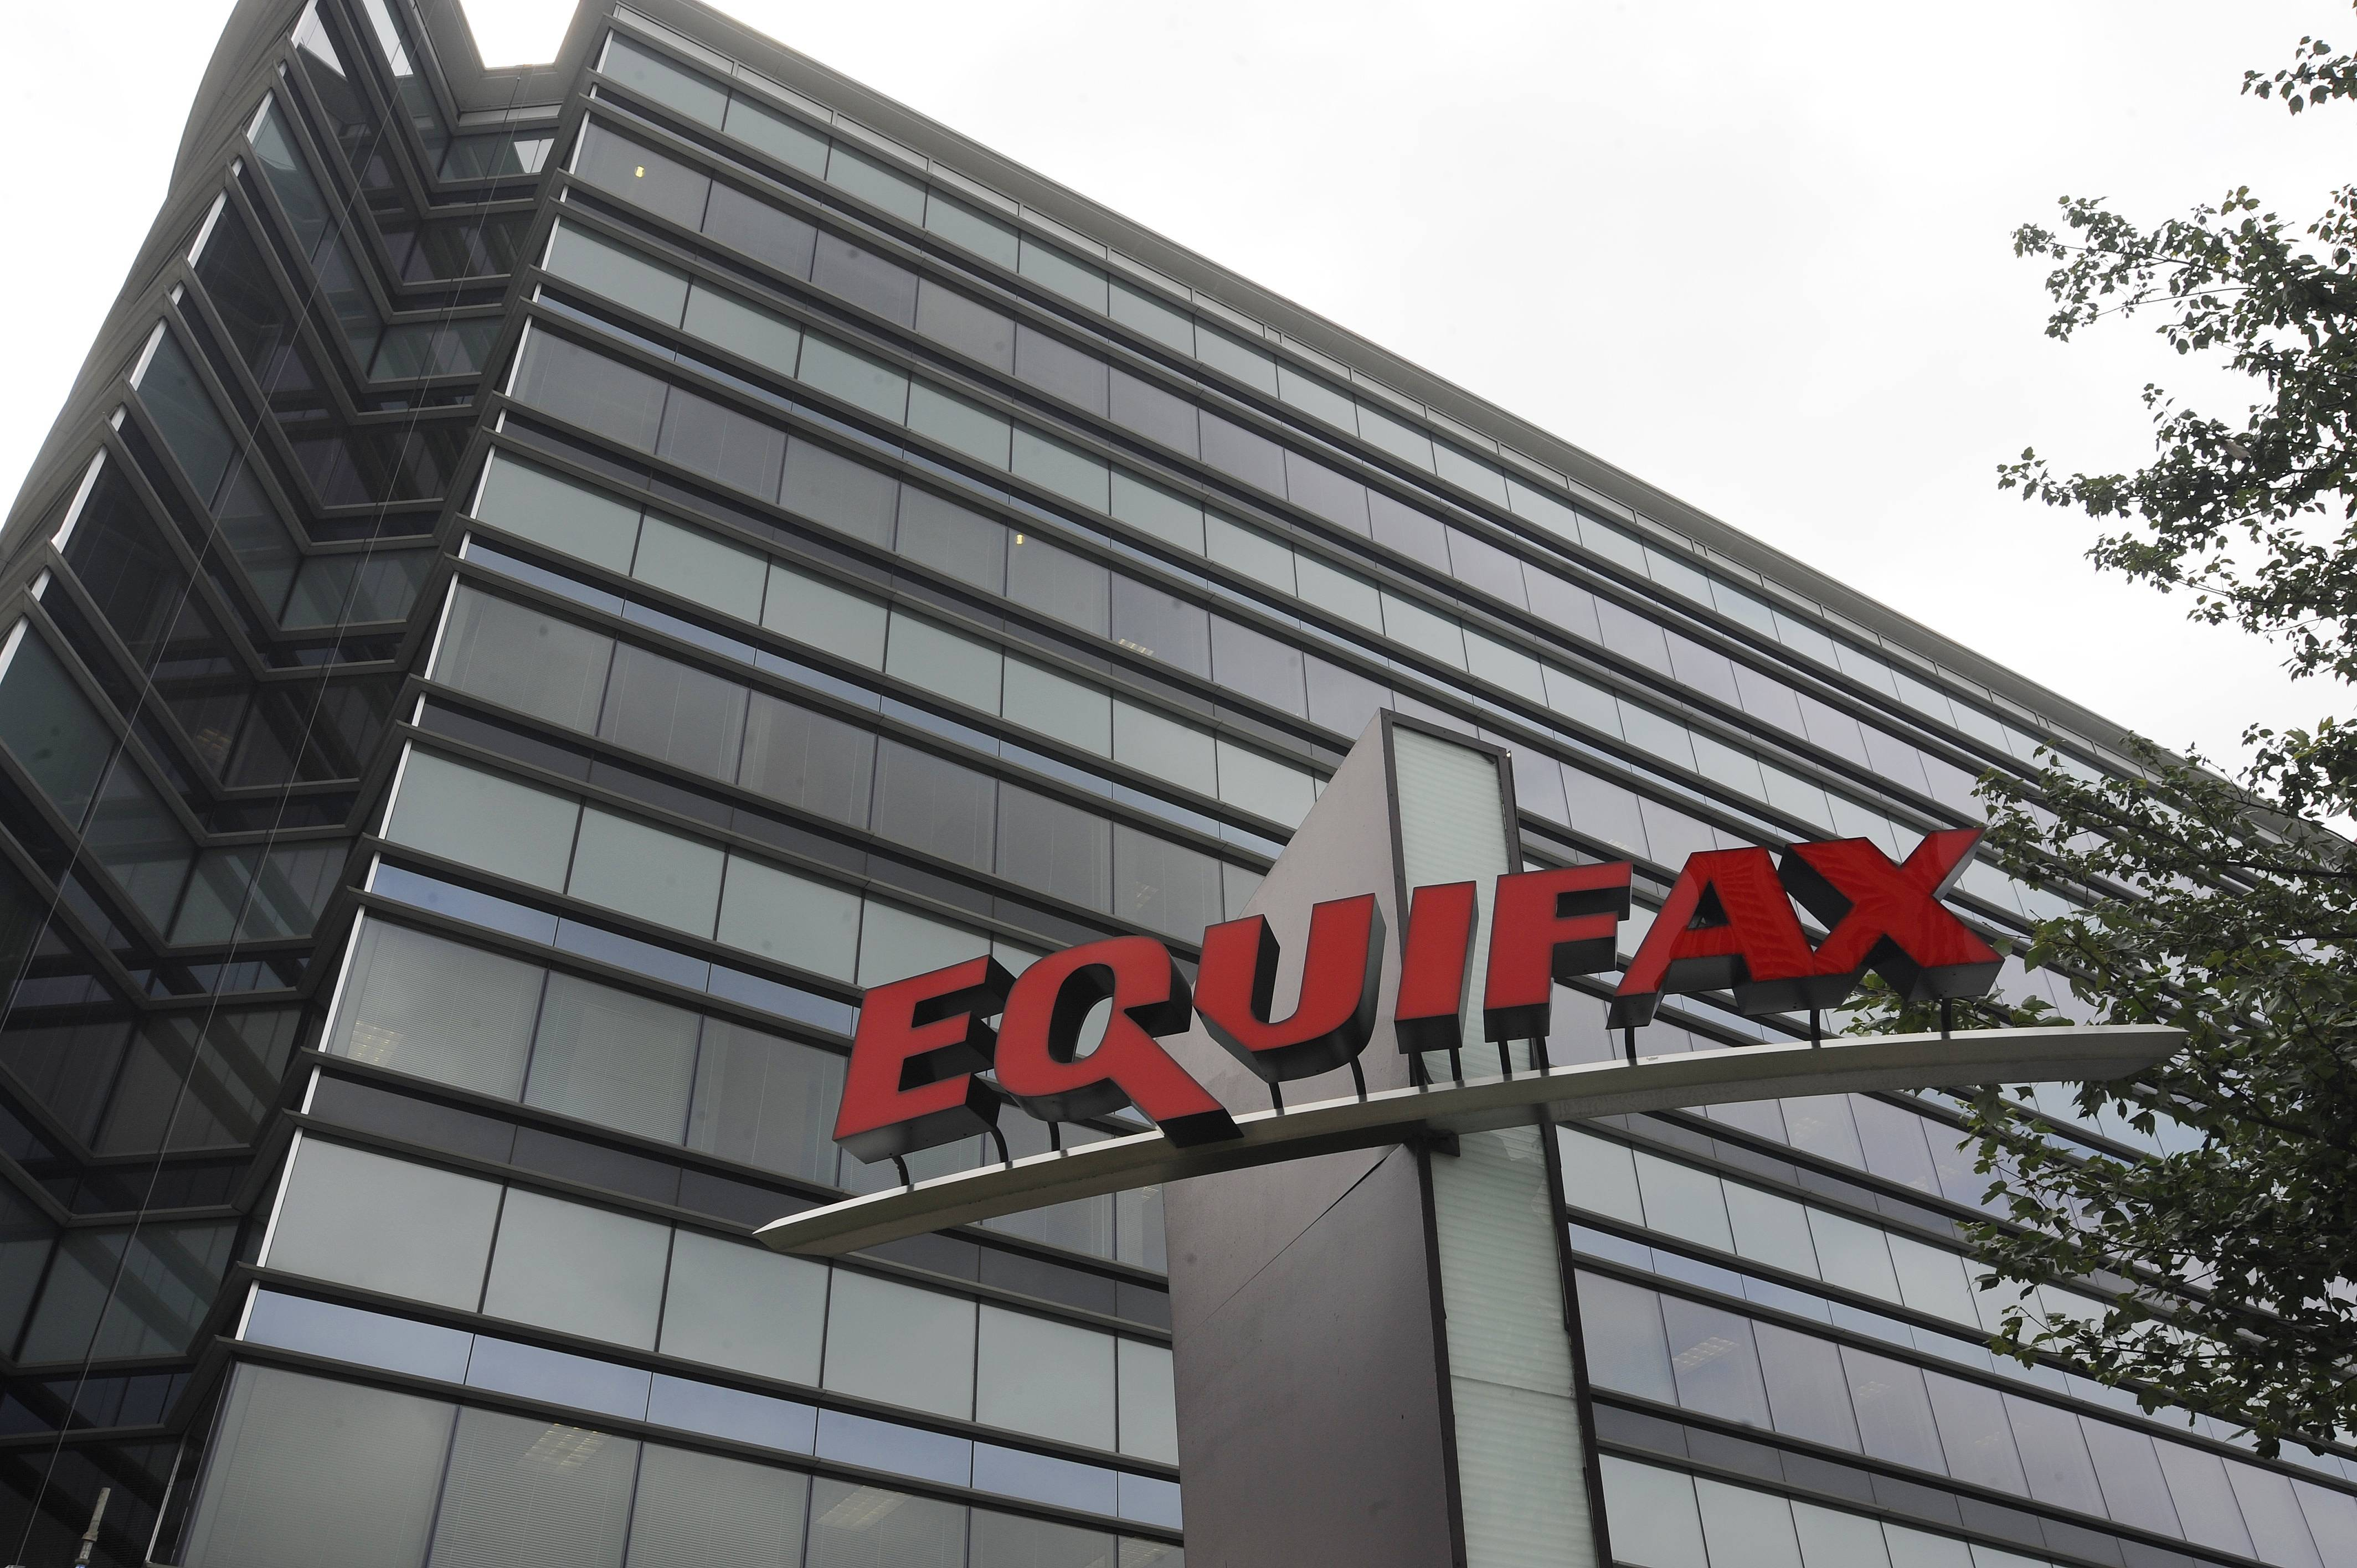 Credit monitoring company Equifax says a breach exposed social security numbers and other data from about 143 million Americans. Since news of the breach, LifeLock has seen six times its usual web traffic and the company is enrolling 10 times as many new customers every hour than before the attack was disclosed.